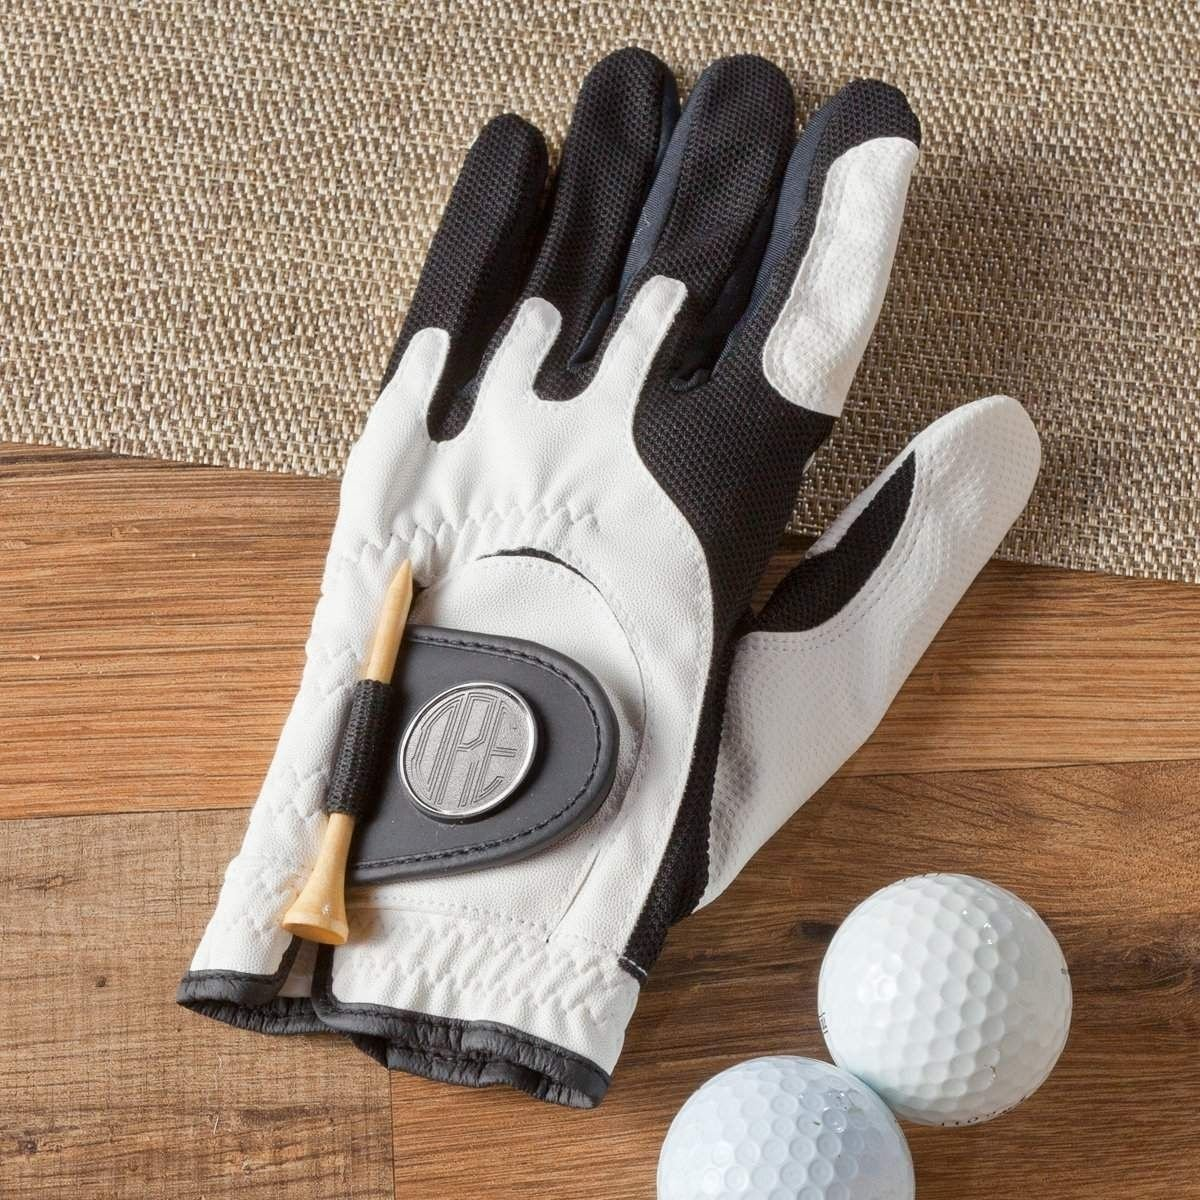 10 Elegant Golf Gift Ideas For Dad golf gifts for men gifts for golfers golf gift ideas personalized 1